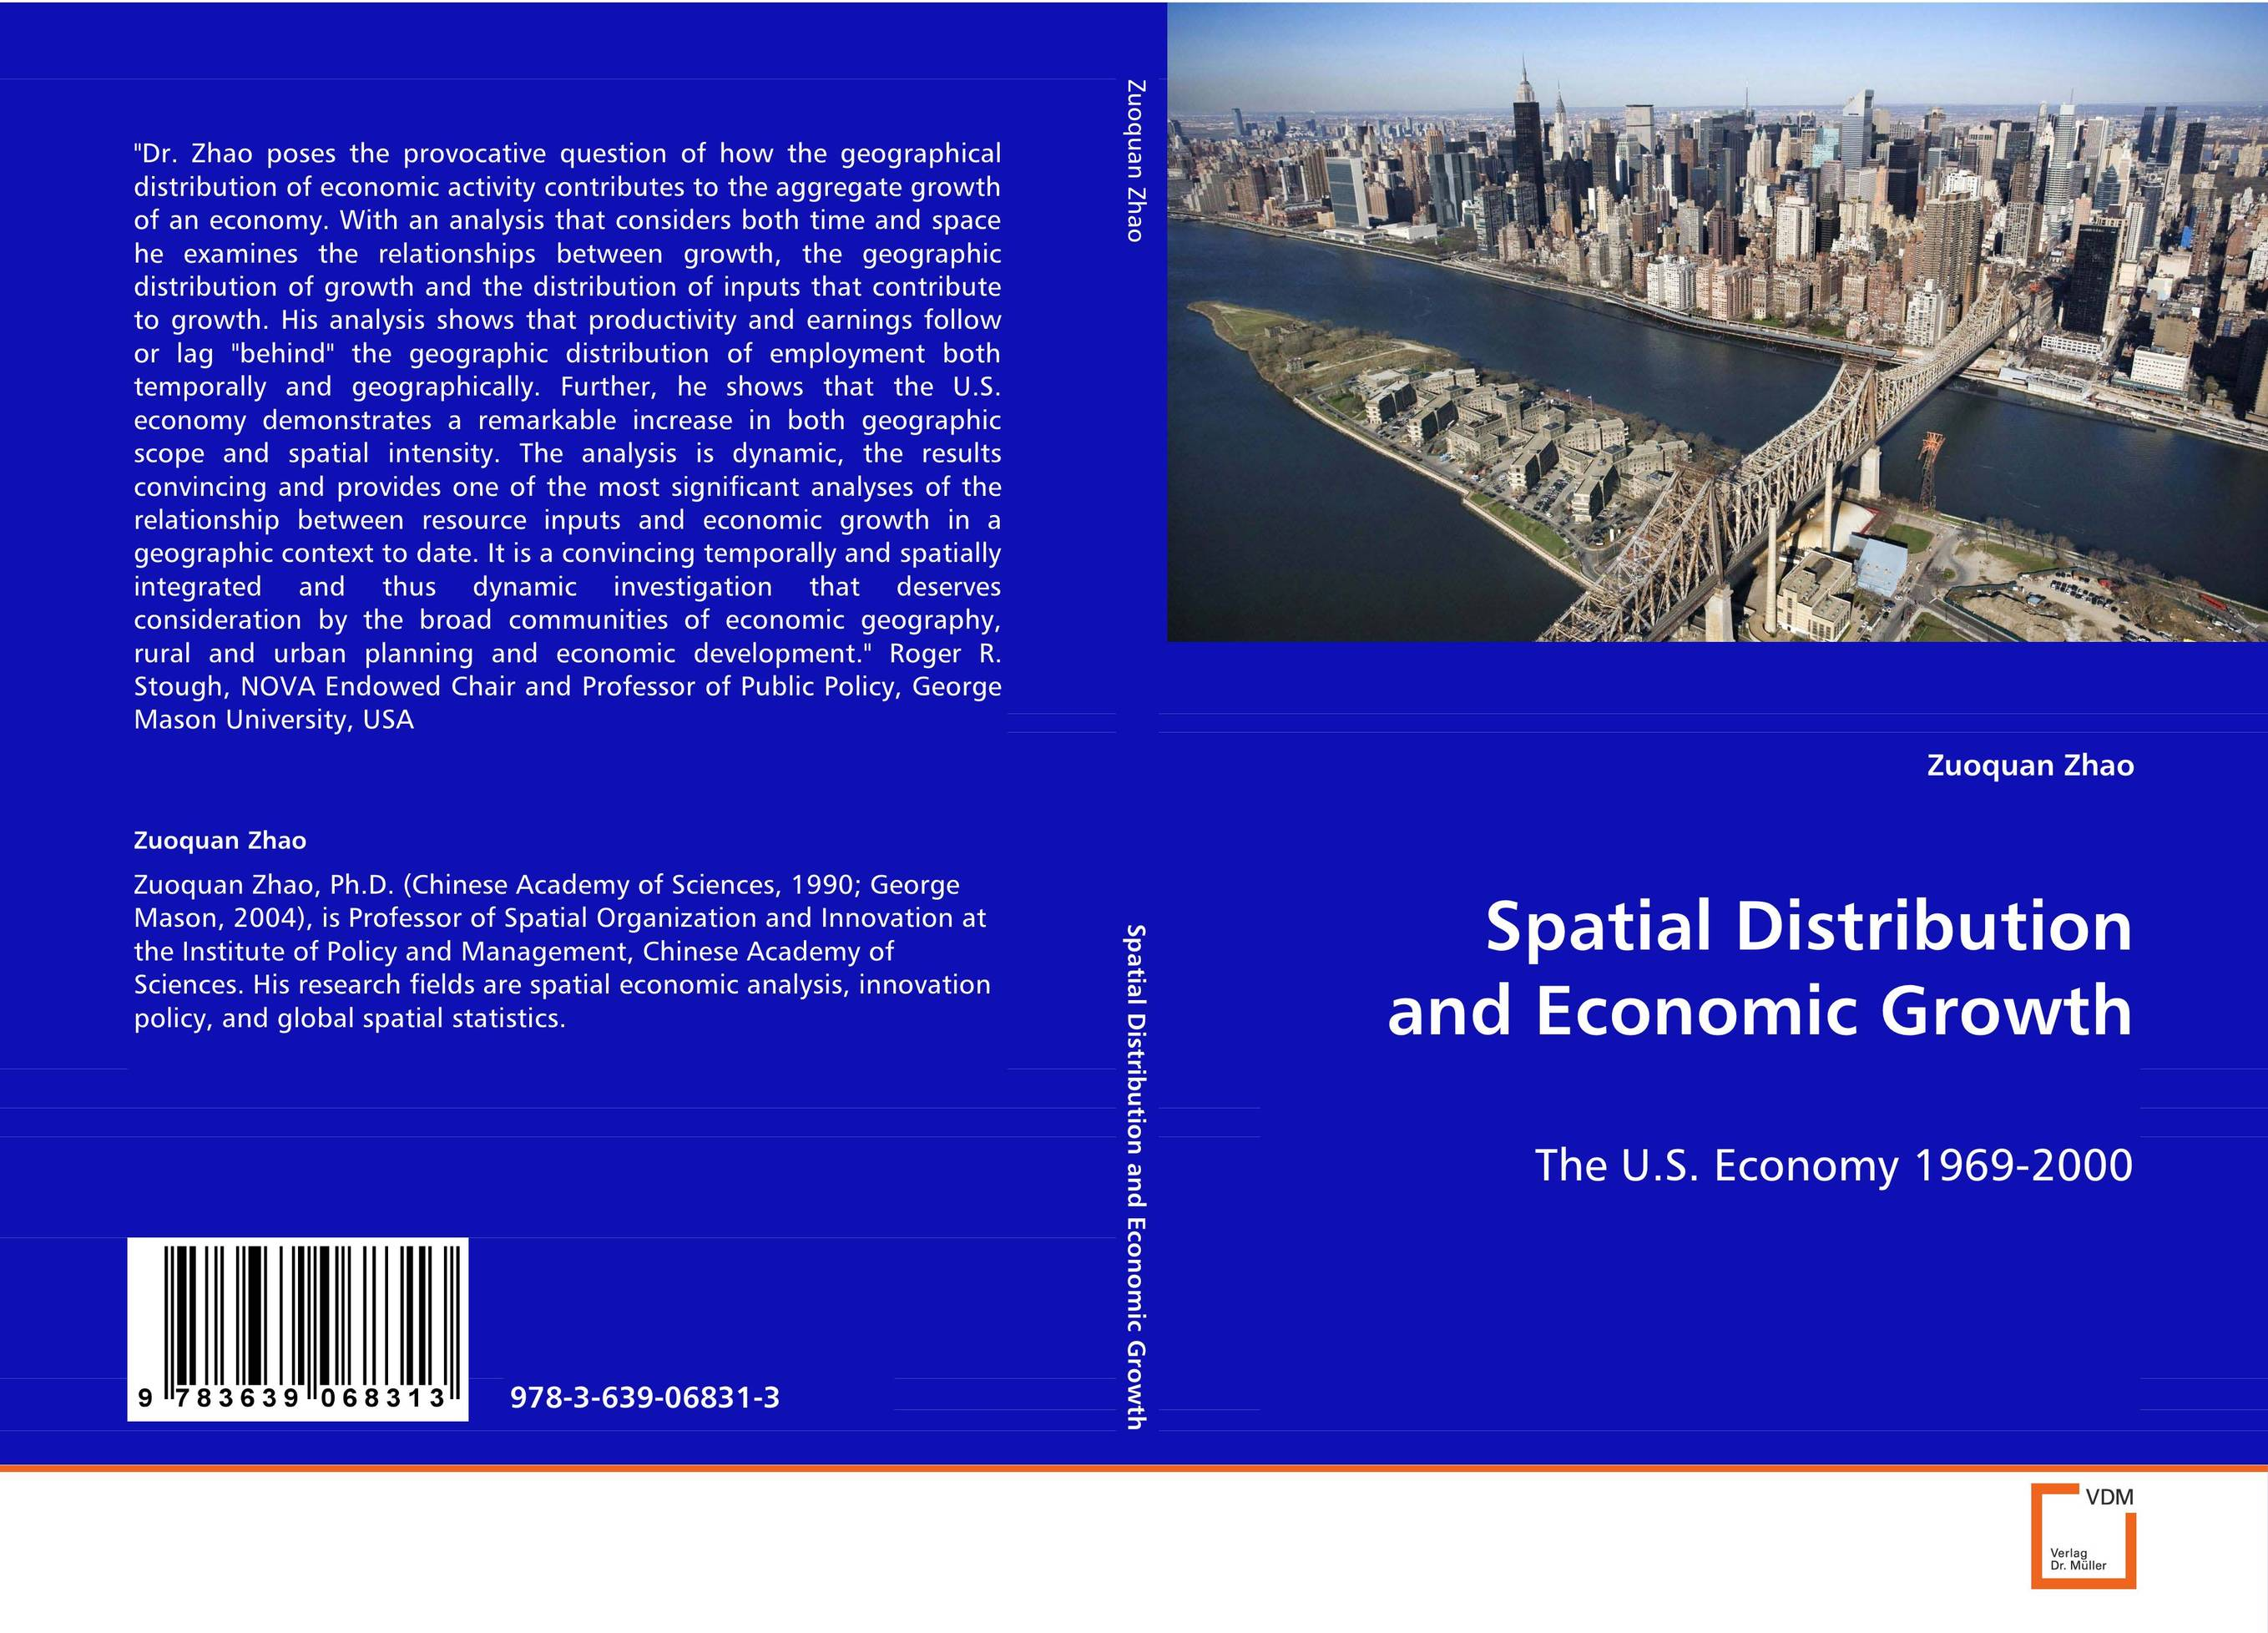 Spatial Distribution and Economic Growth patent intensity and economic growth